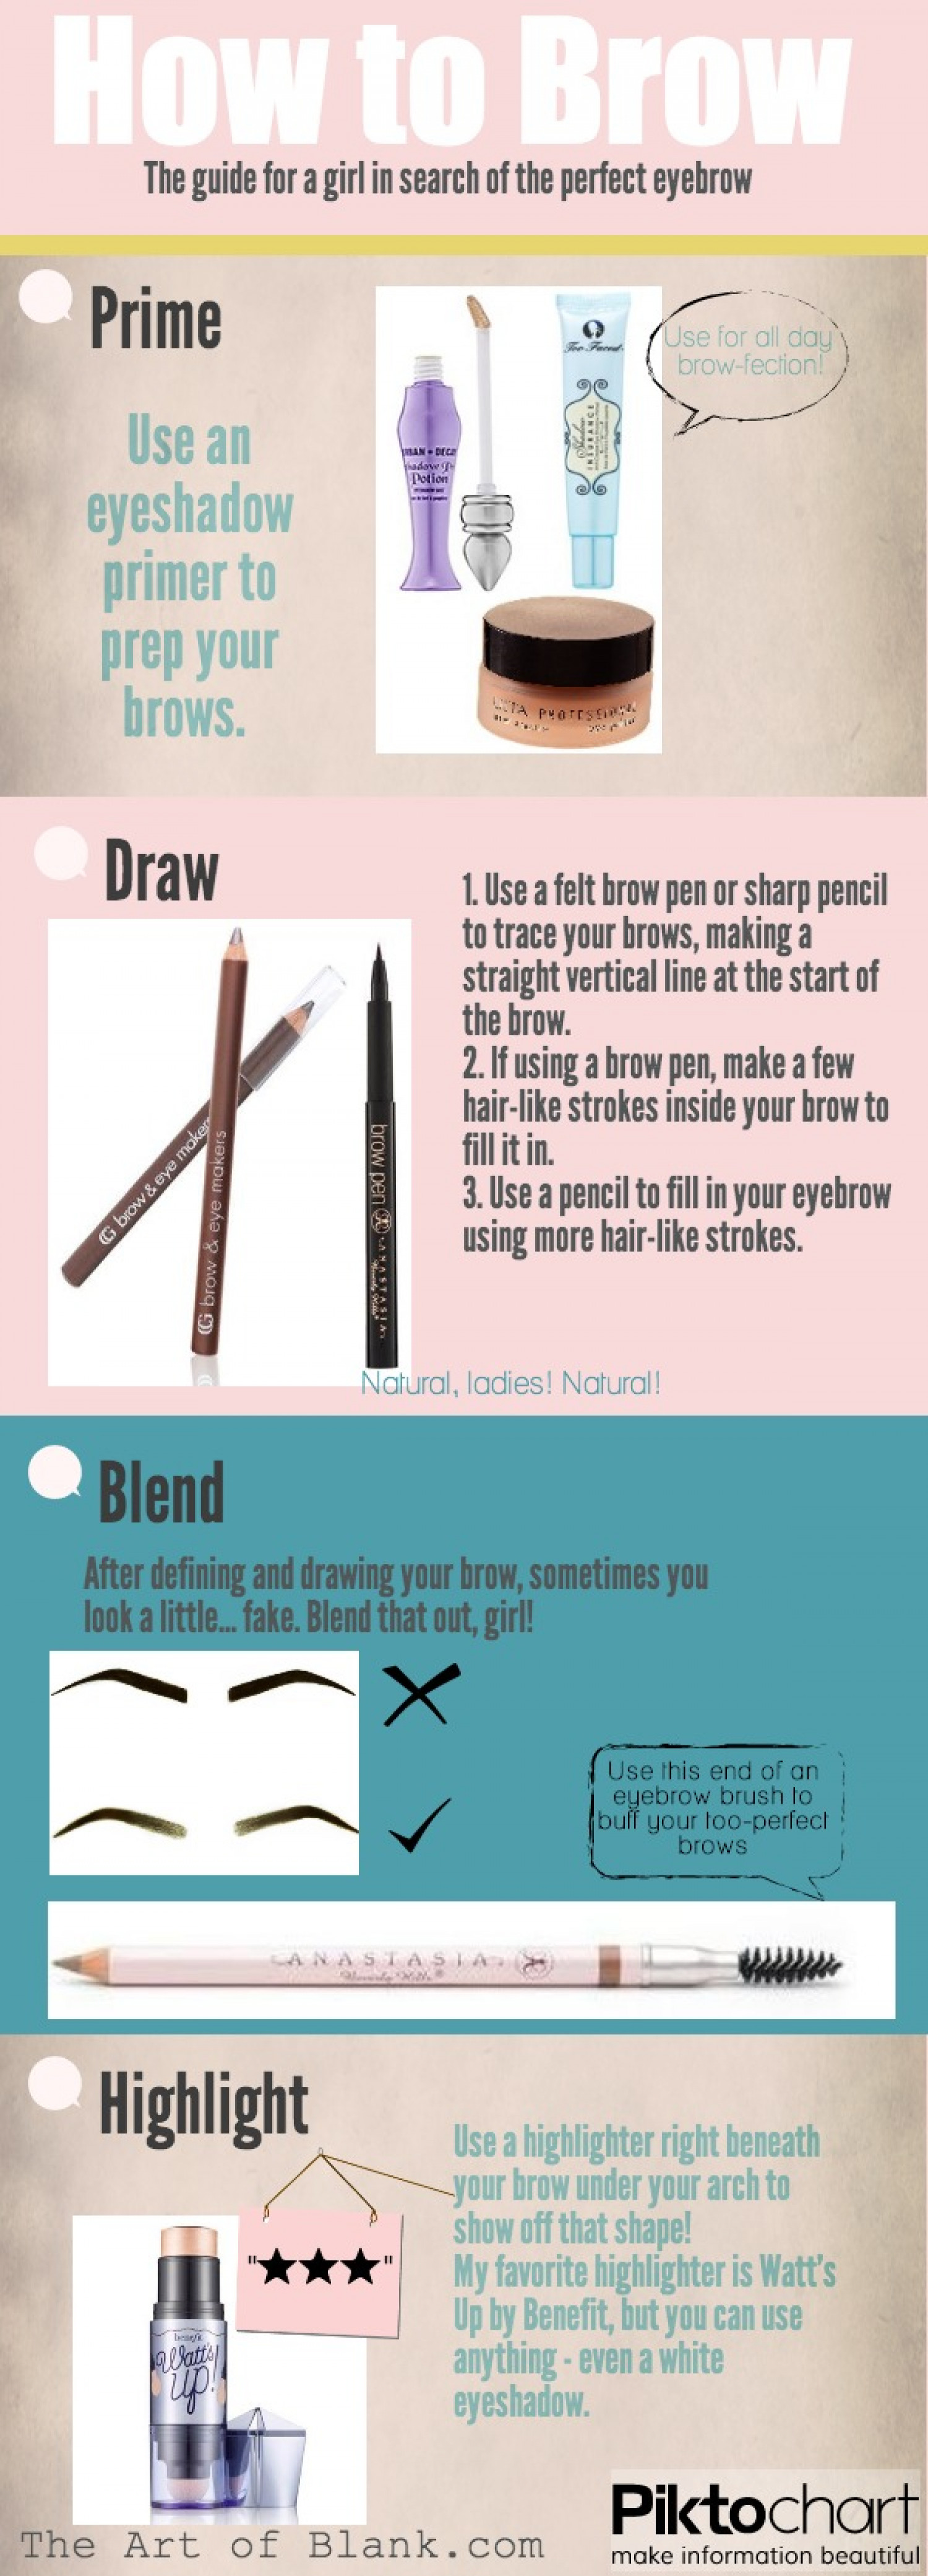 How to Get the Perfect Brows Infographic